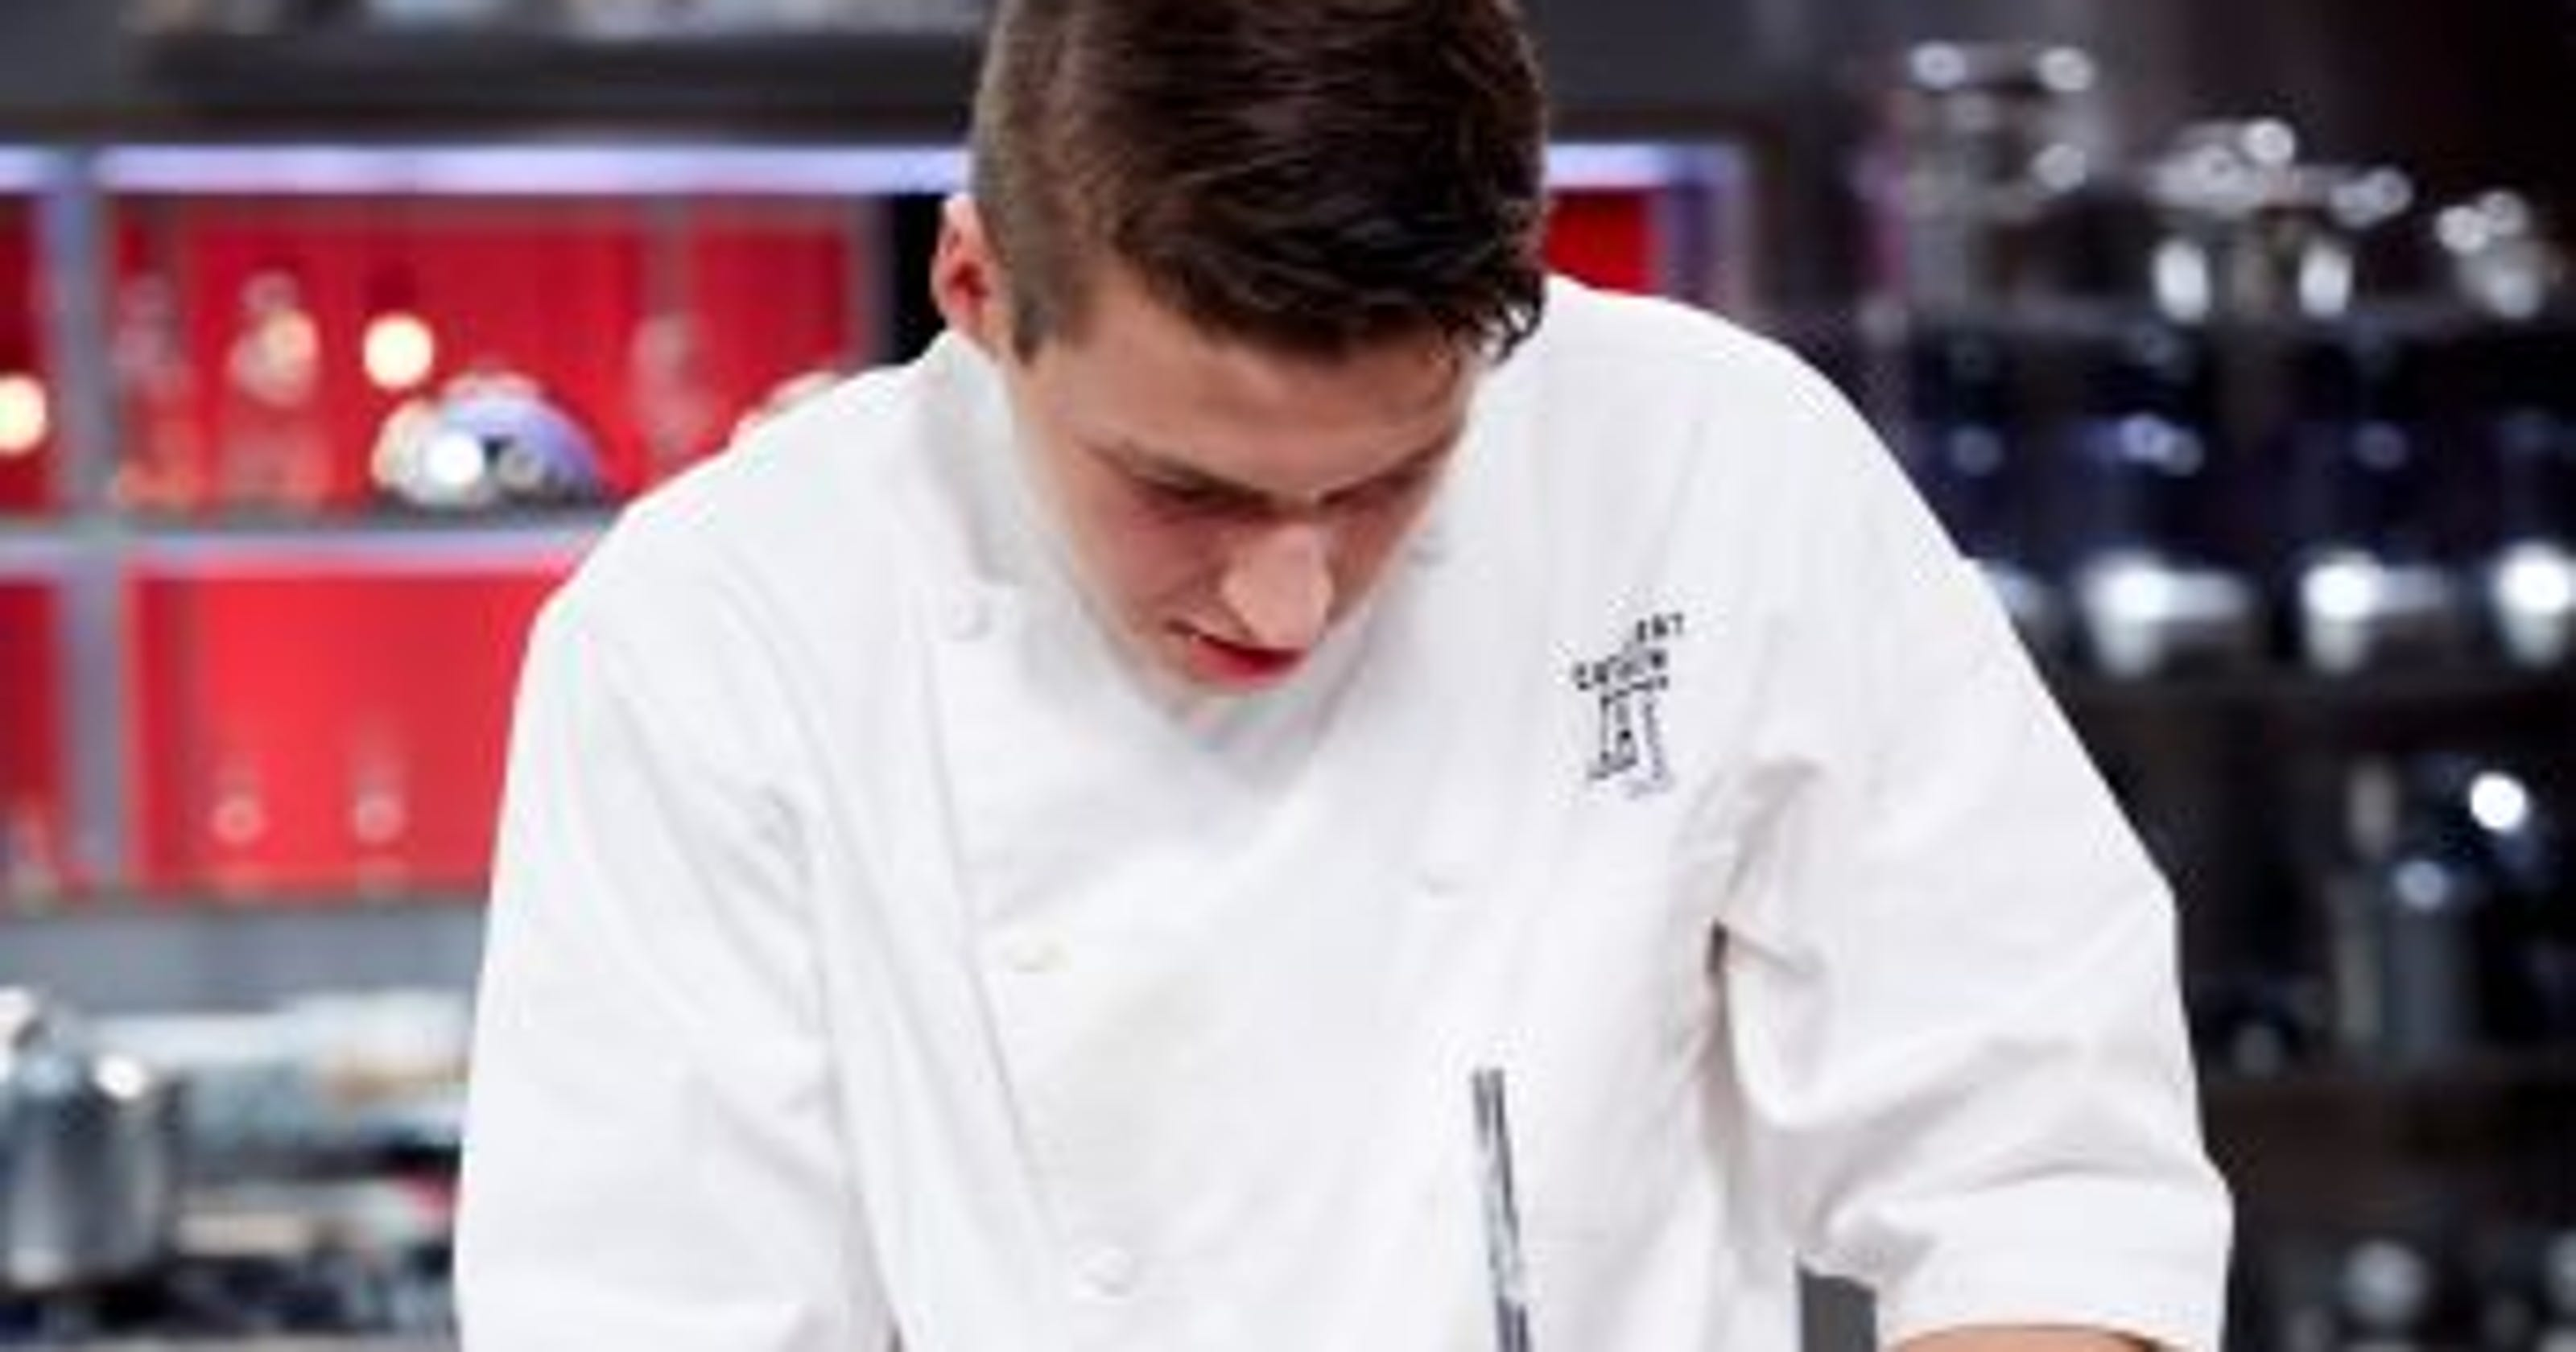 Scottsdale chef wins \'Cutthroat Kitchen,\' heads to finale